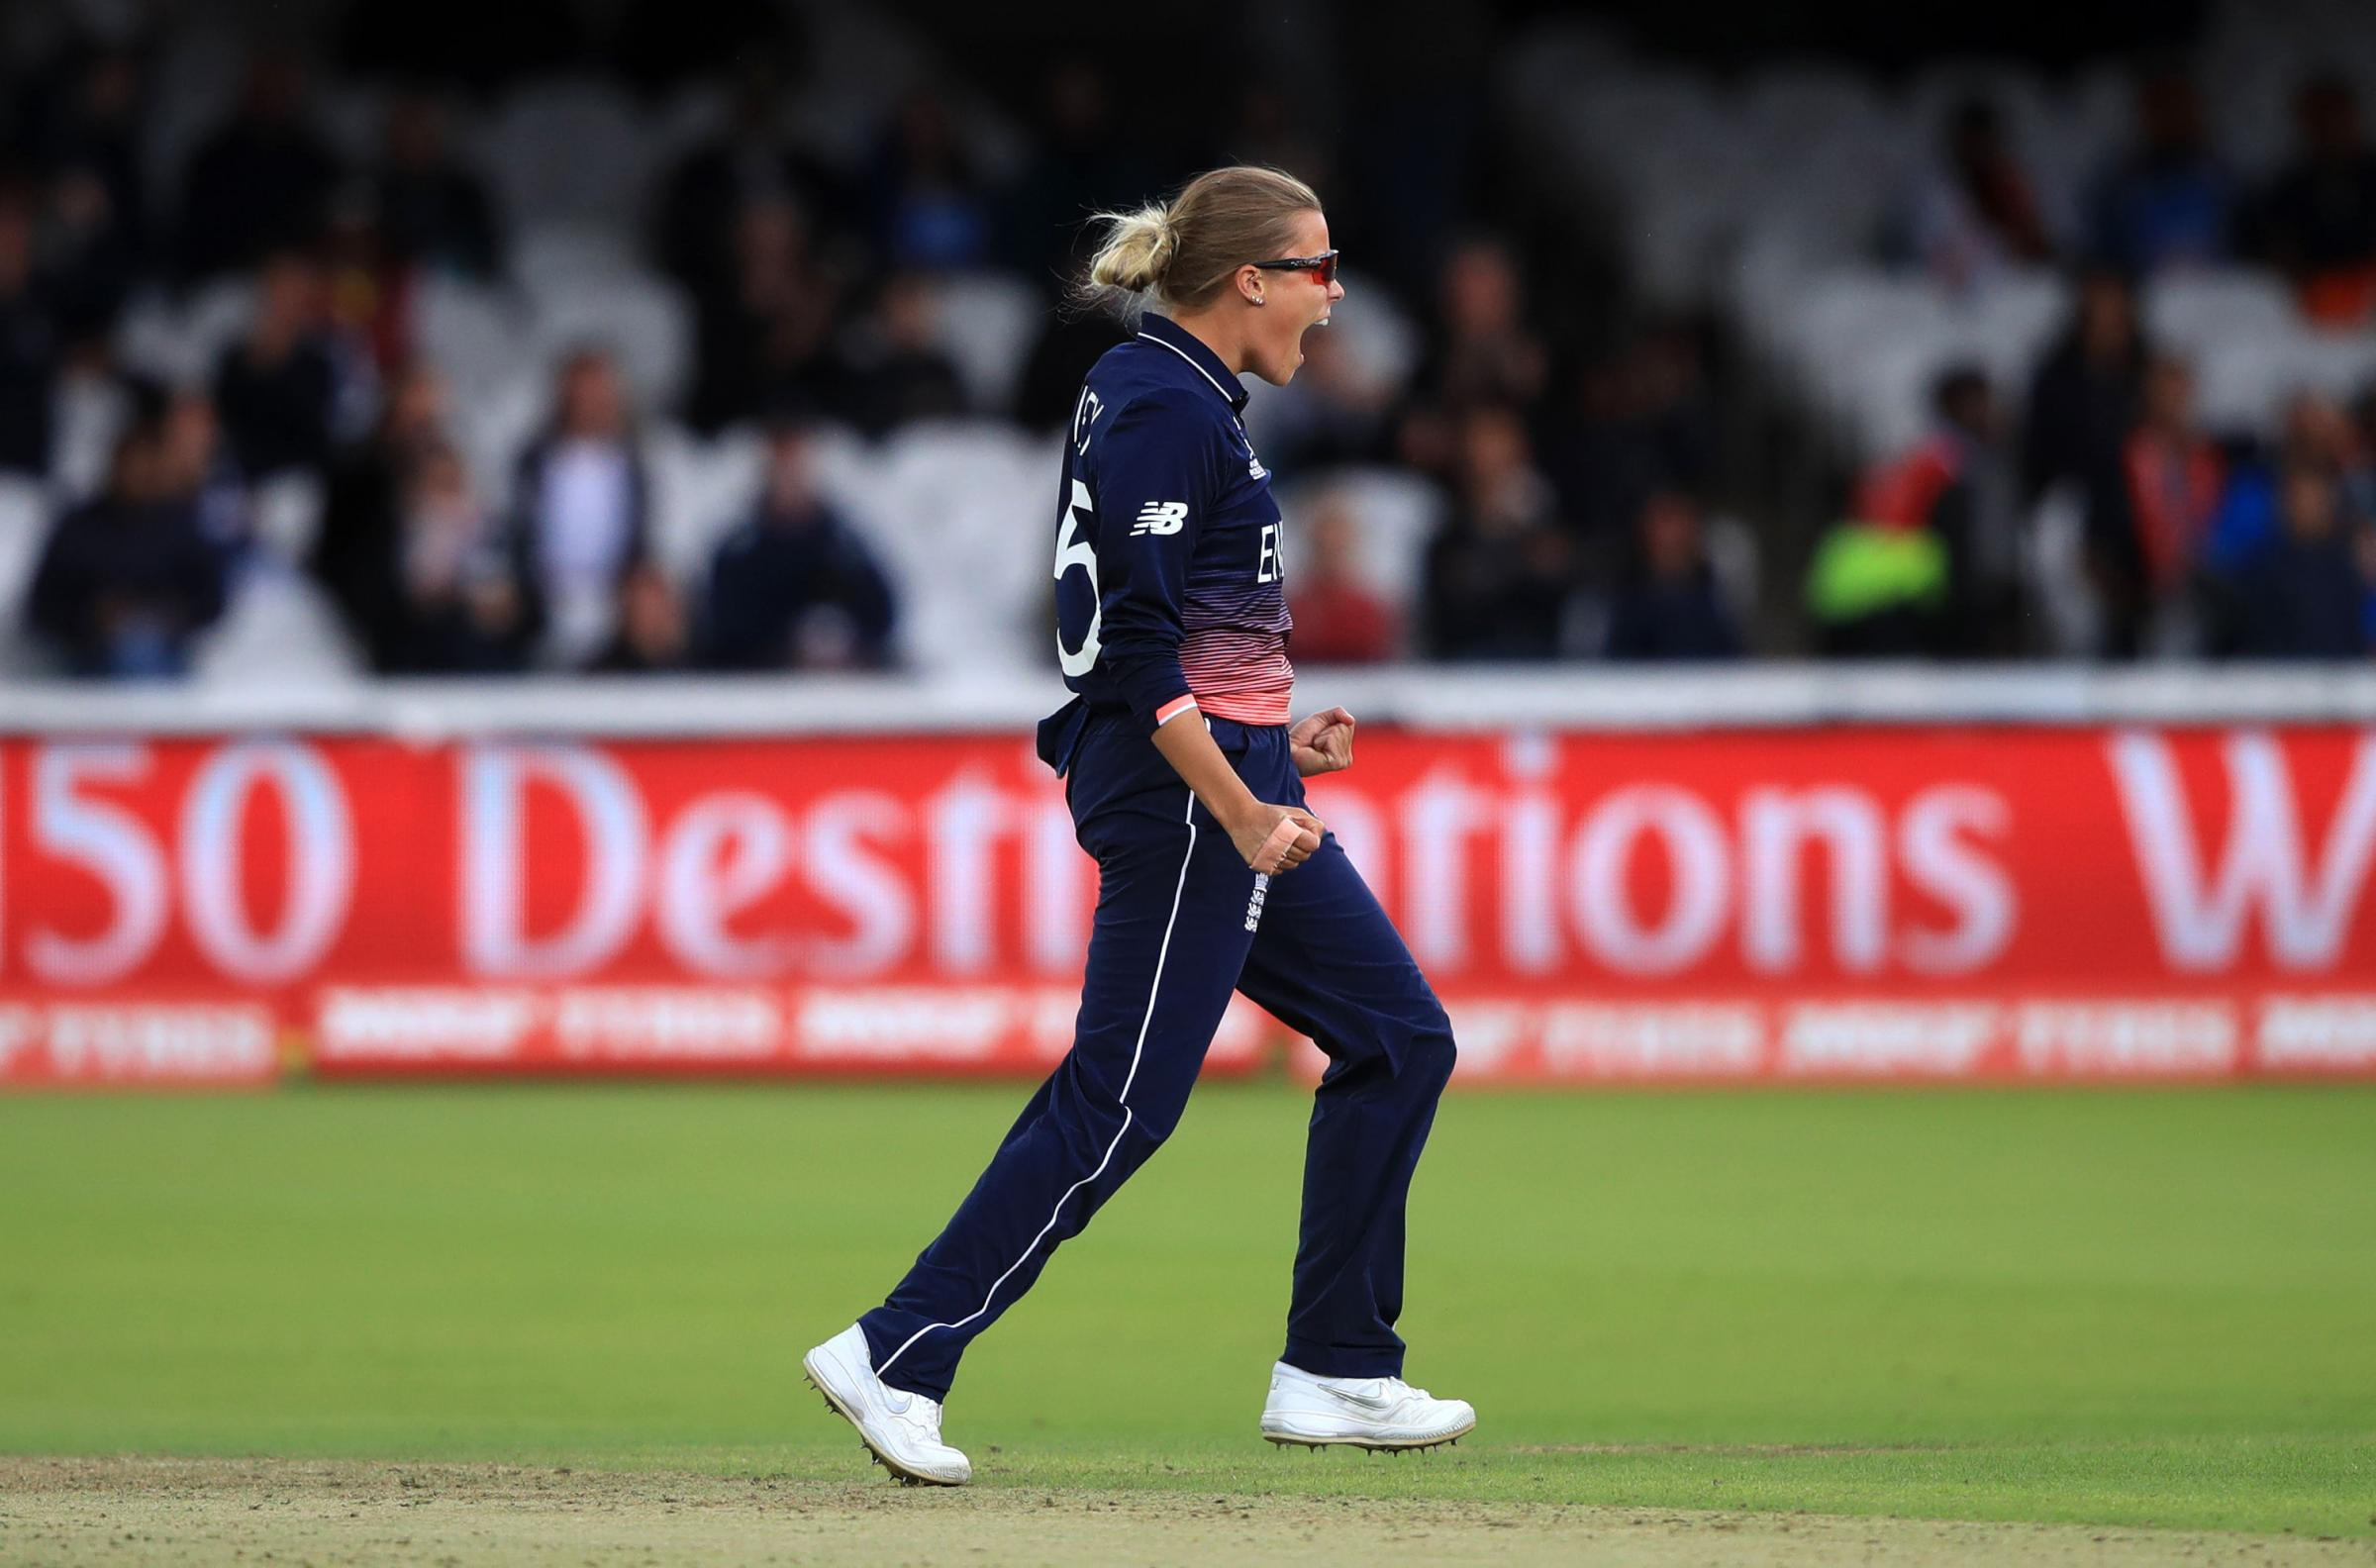 England's Alex Hartley celebrates the wicket of India's Sushma Verma during the ICC Women's World Cup Final at Lord's, London. PRESS ASSOCIATION Photo. Picture date: Sunday July 23, 2017. See PA story CRICKET Final. Photo credit should rea